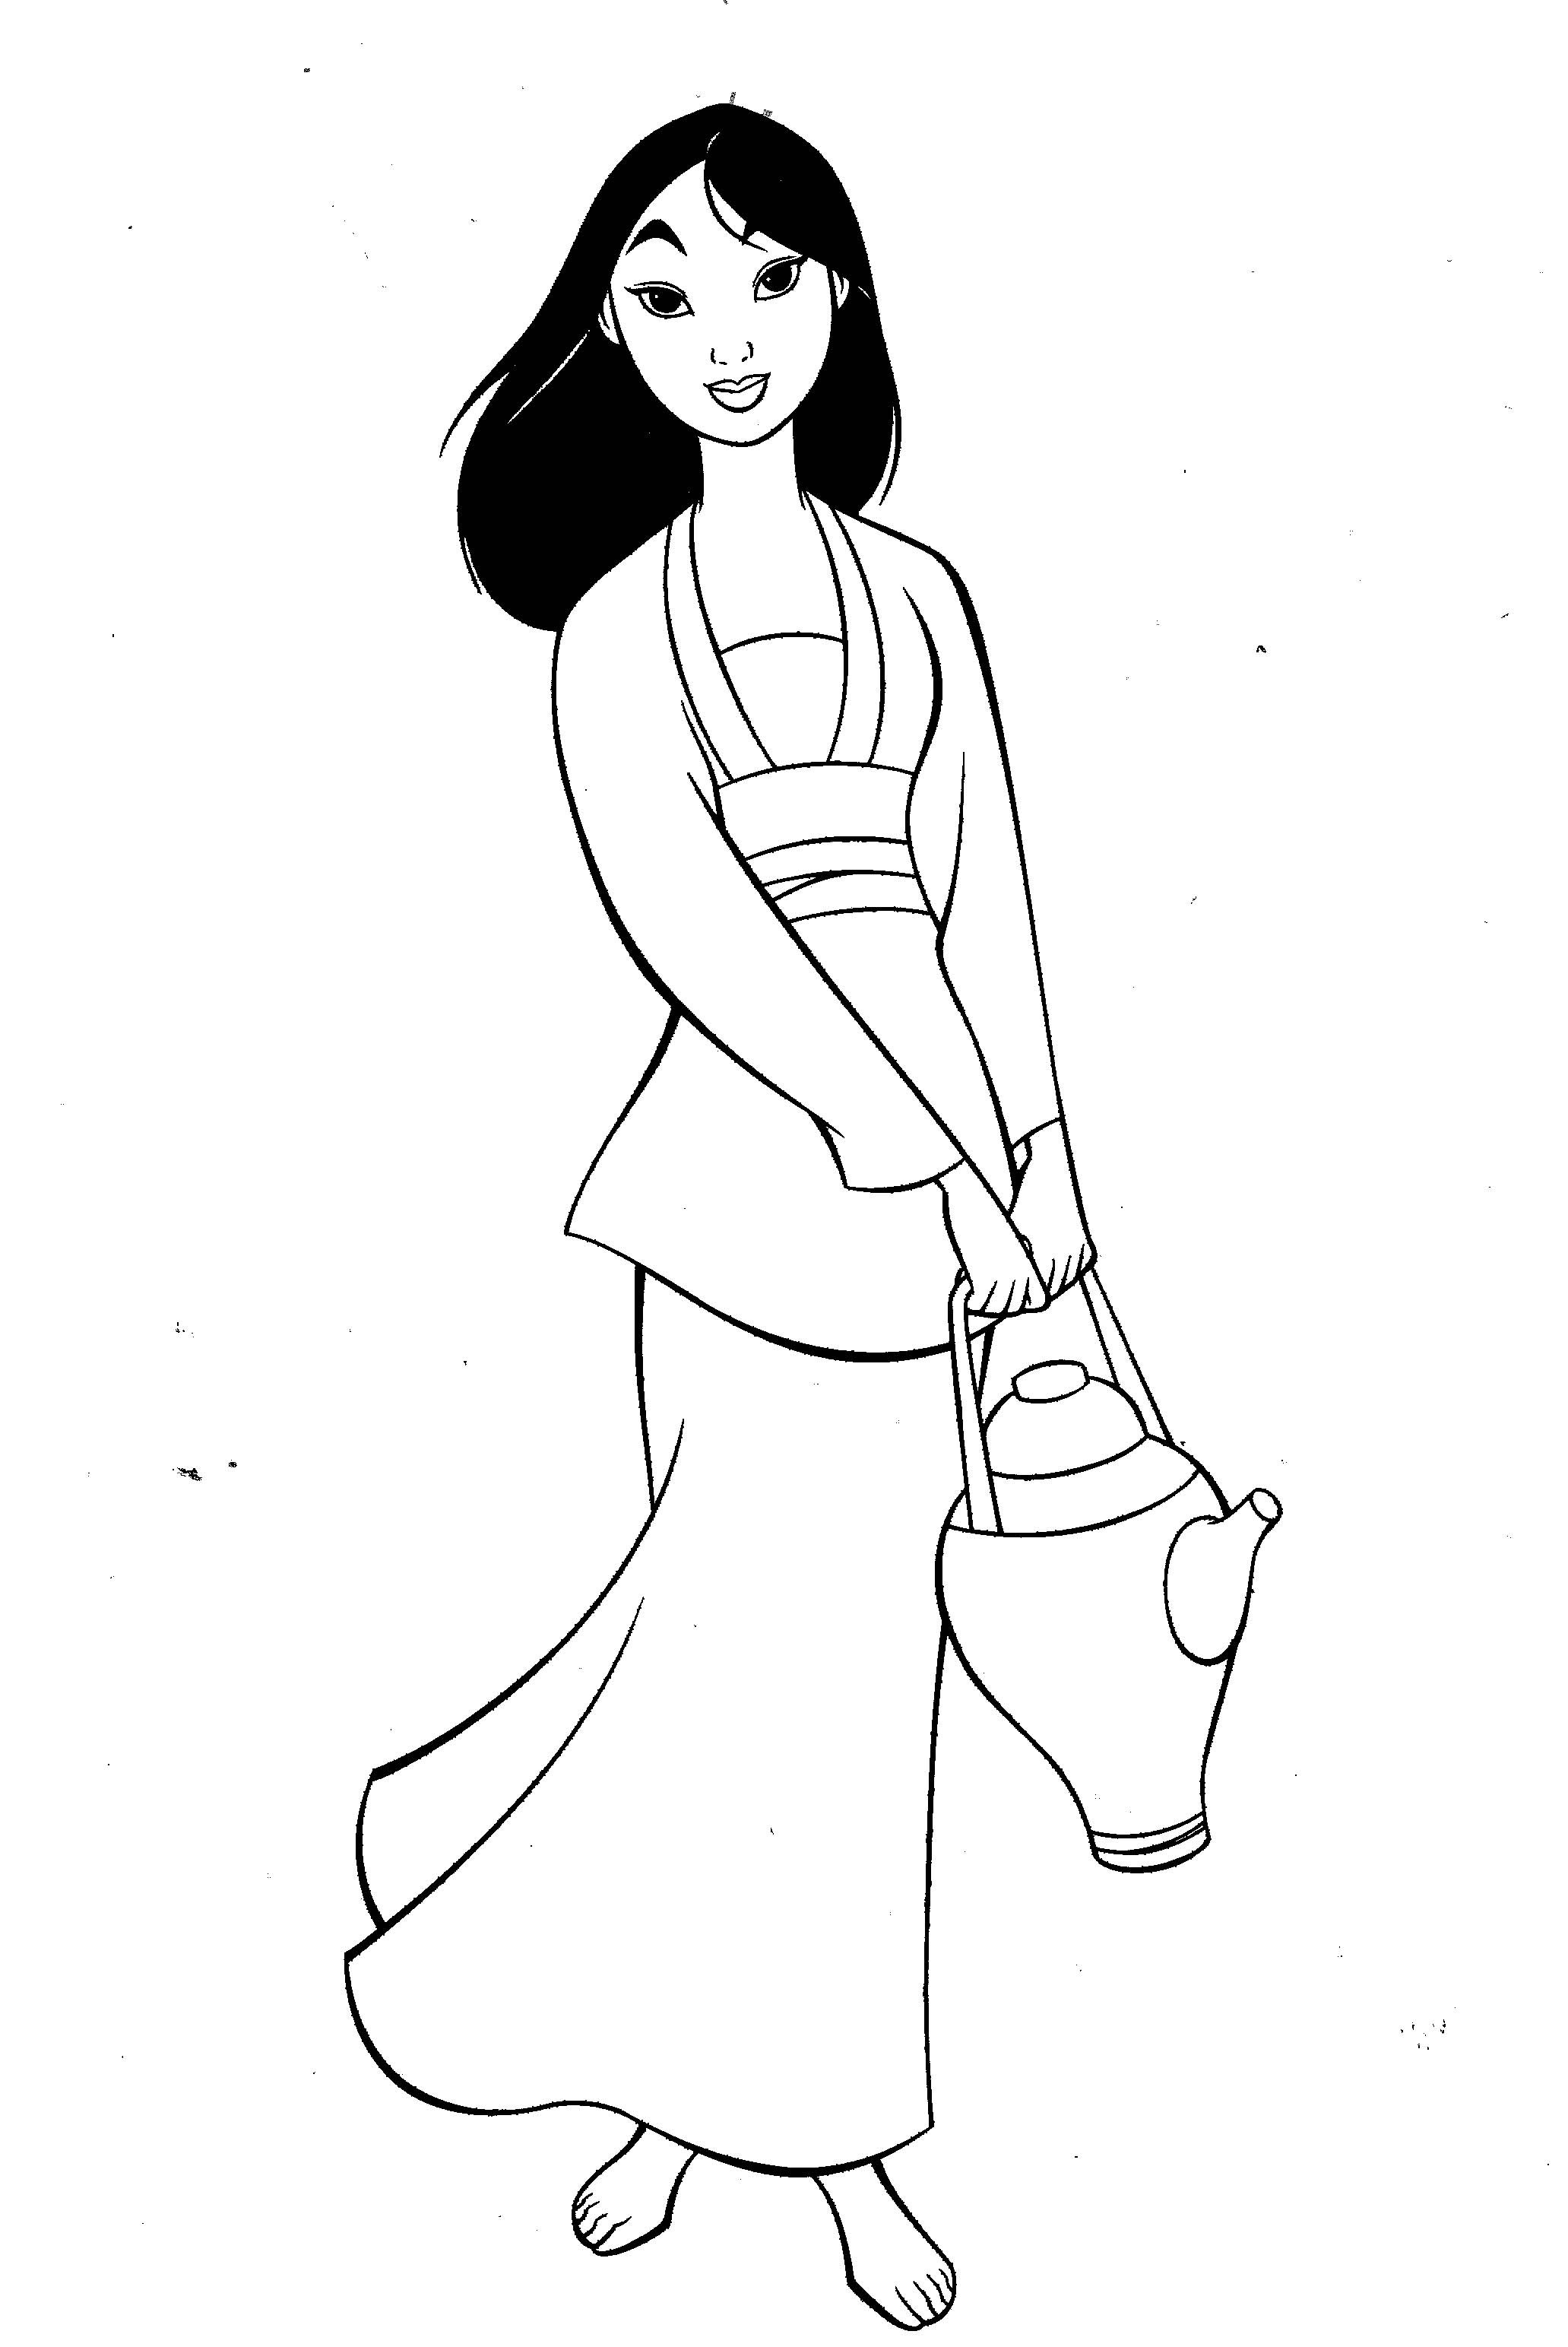 mulan bring drinking water coloring pages for kids printable mulan coloring pages for kids